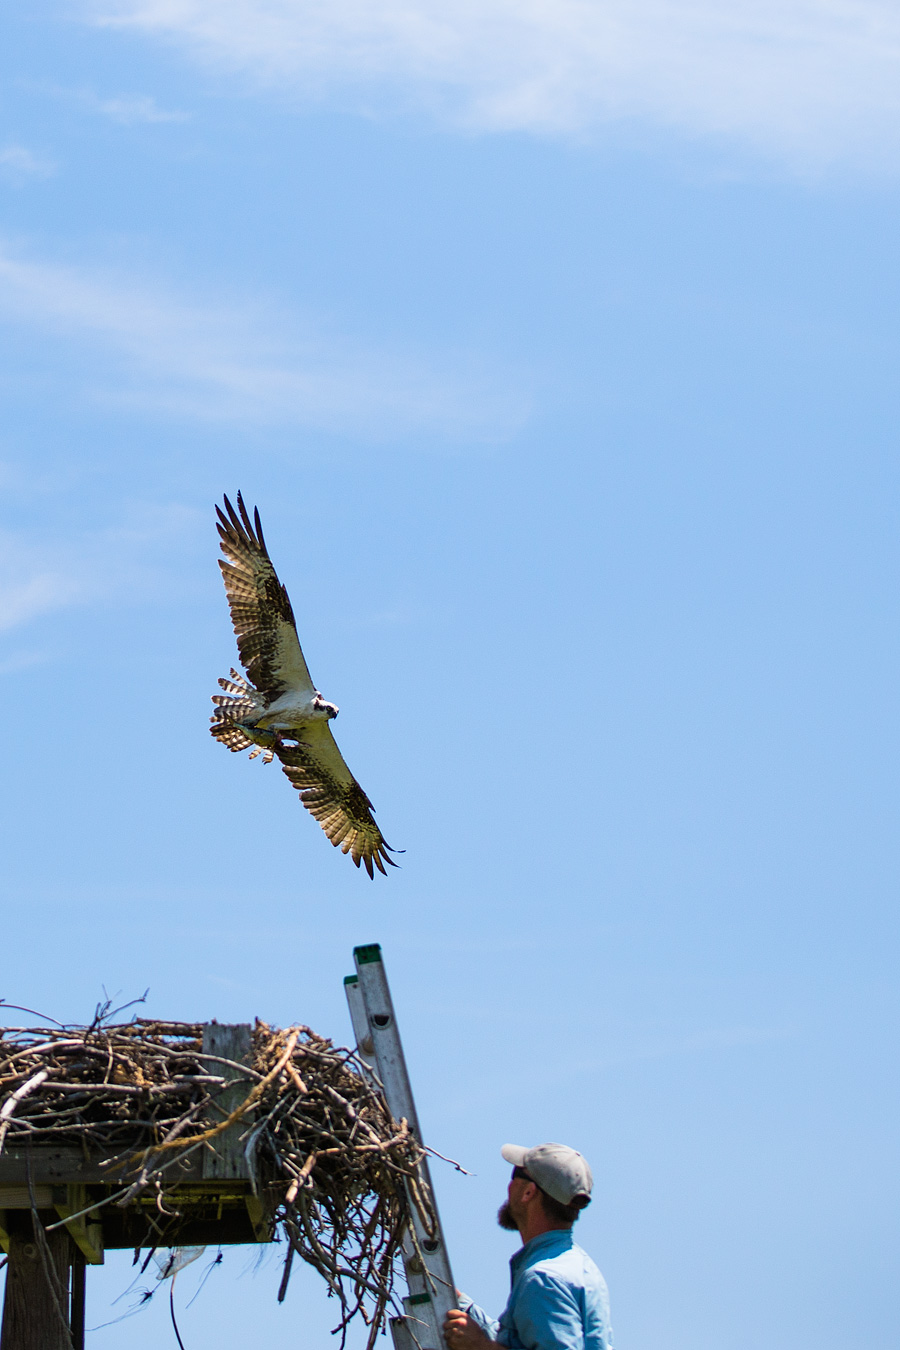 Osprey banding is alway an adventure, as Osprey are generally great parents and will mercilessly buzz, bomb, blast, and blitz anything that comes to close to their nests.